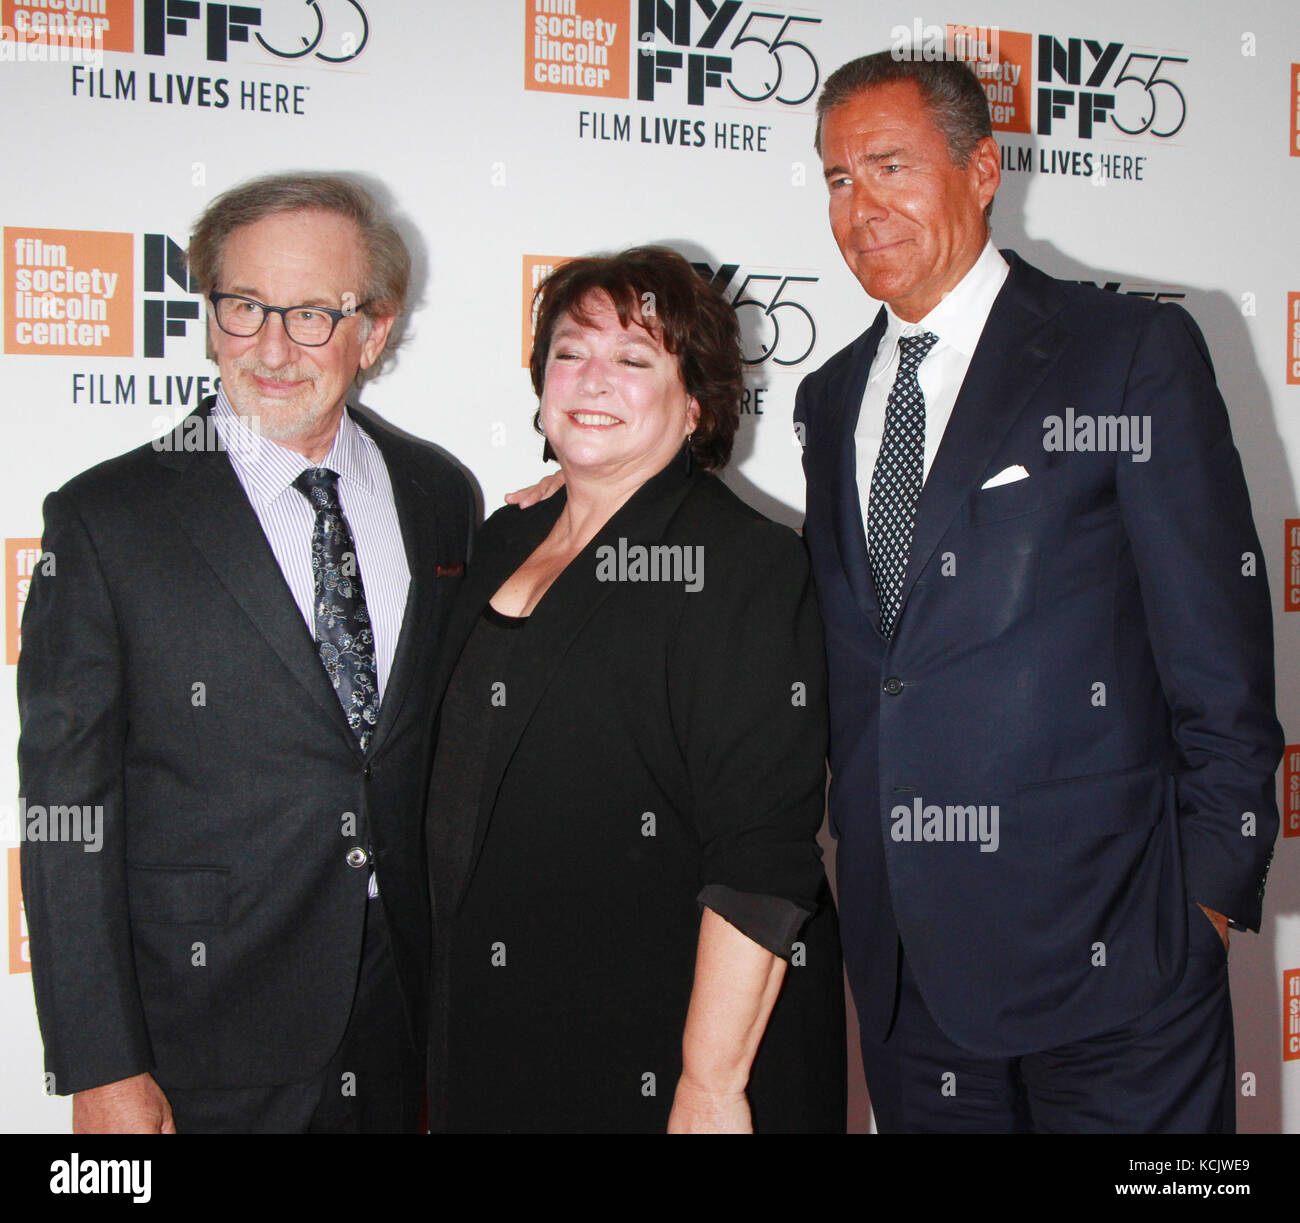 New York, USA. 05th Oct, 2017. New York, NY, USA. 05th Oct, 2017. Steven Spielberg, Susan Lacy, Richard Plepler - Stock Image